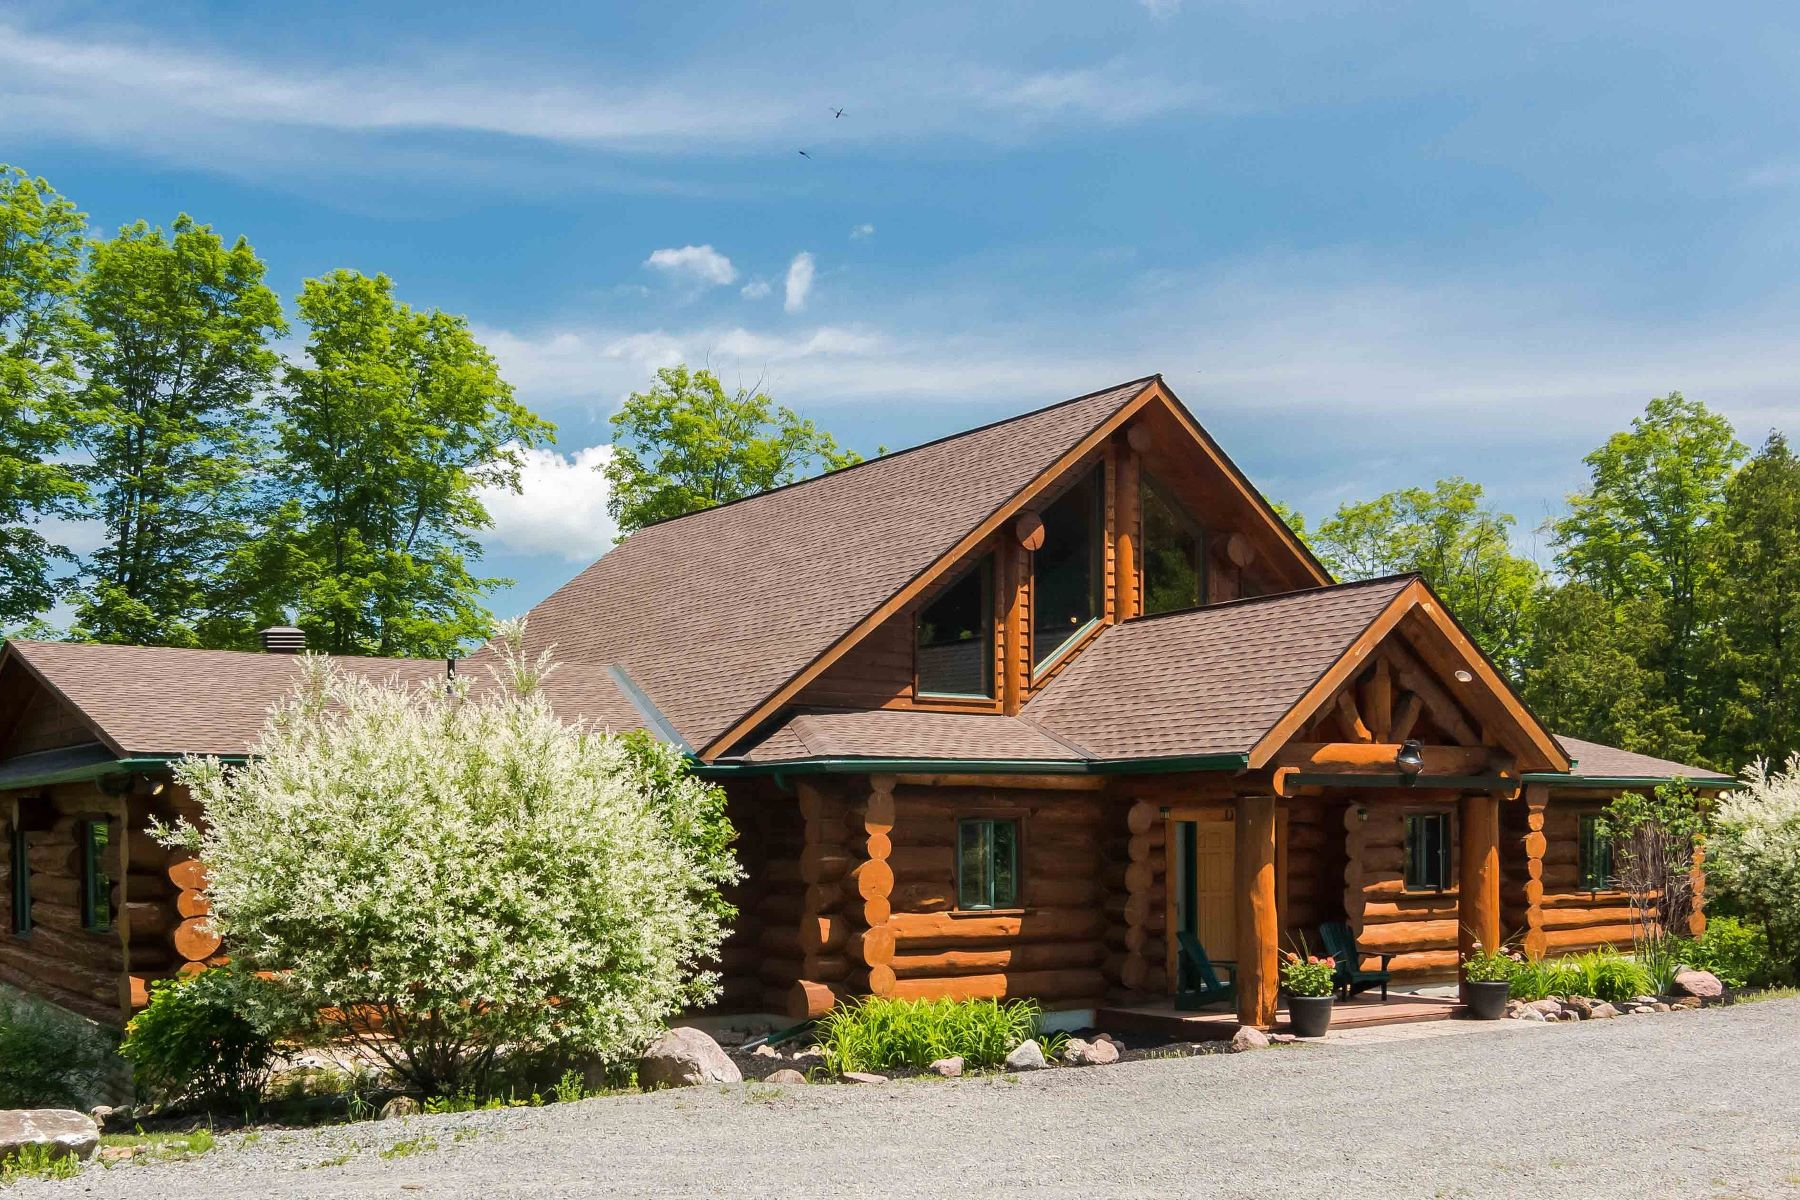 Single Family Home for Sale at Lakefront Log Home 721 A LEE ROAD Westport, Ontario, KOH 1T0 Canada